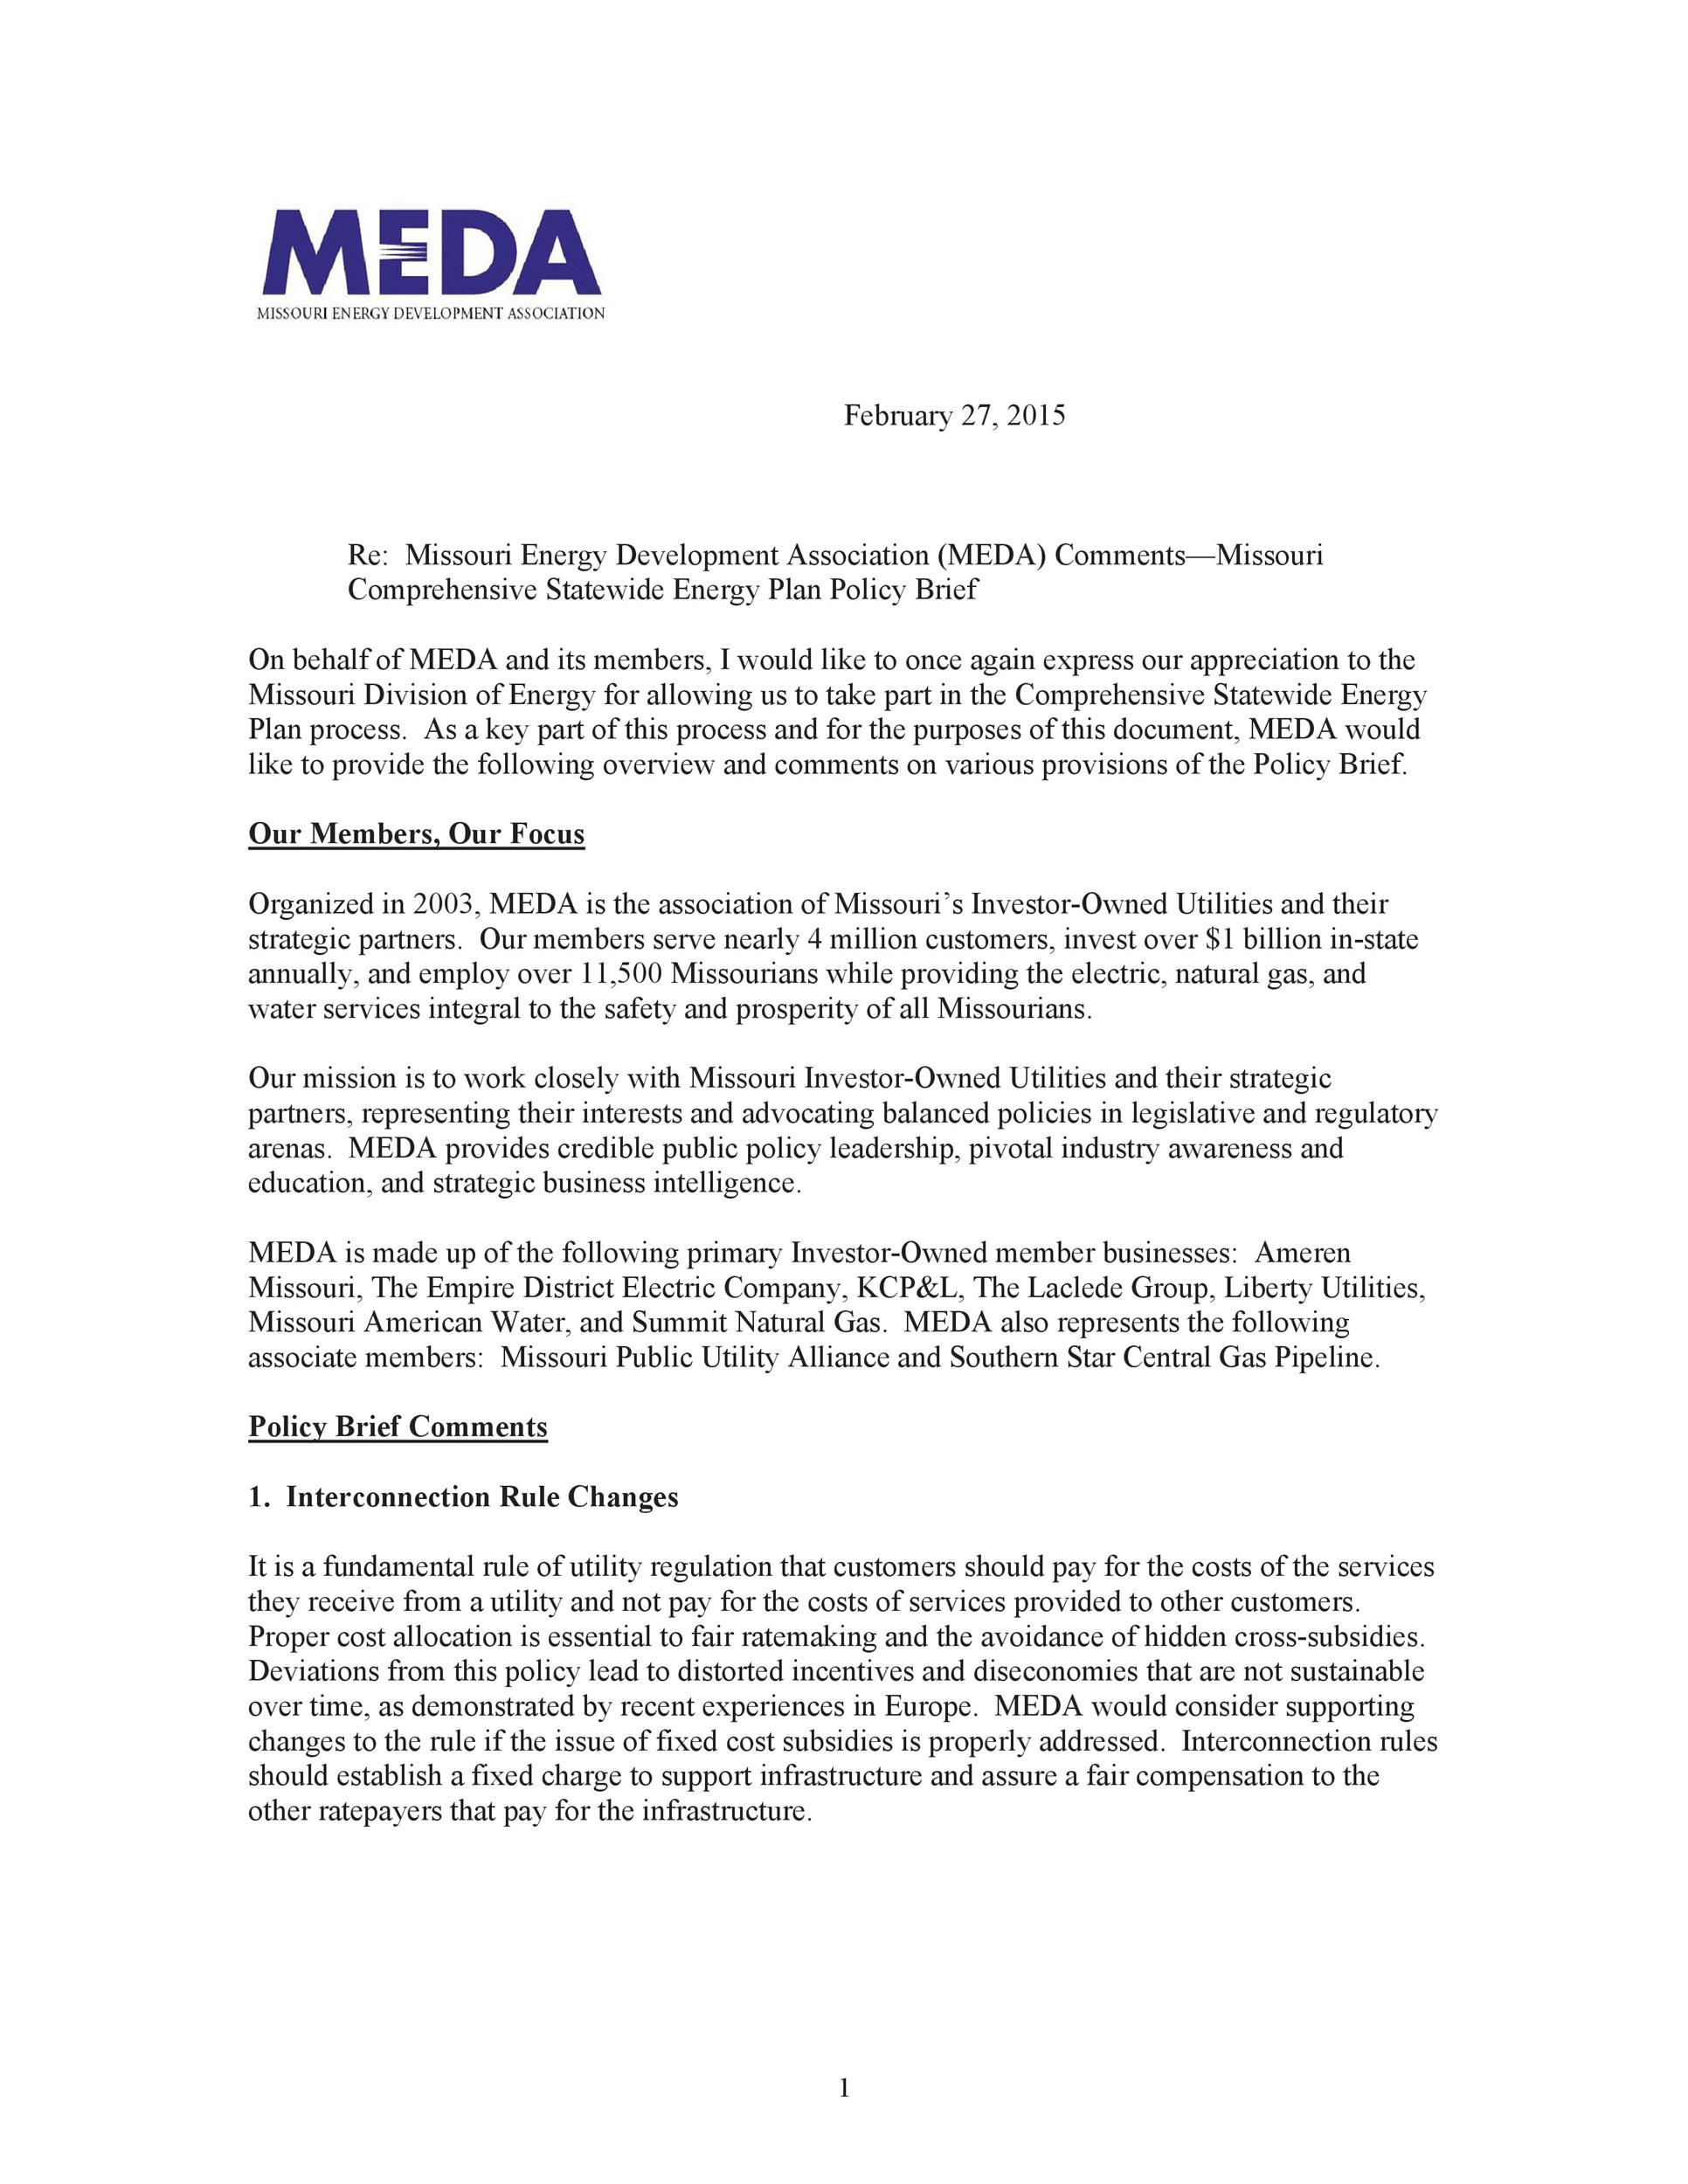 Free policy brief template 33